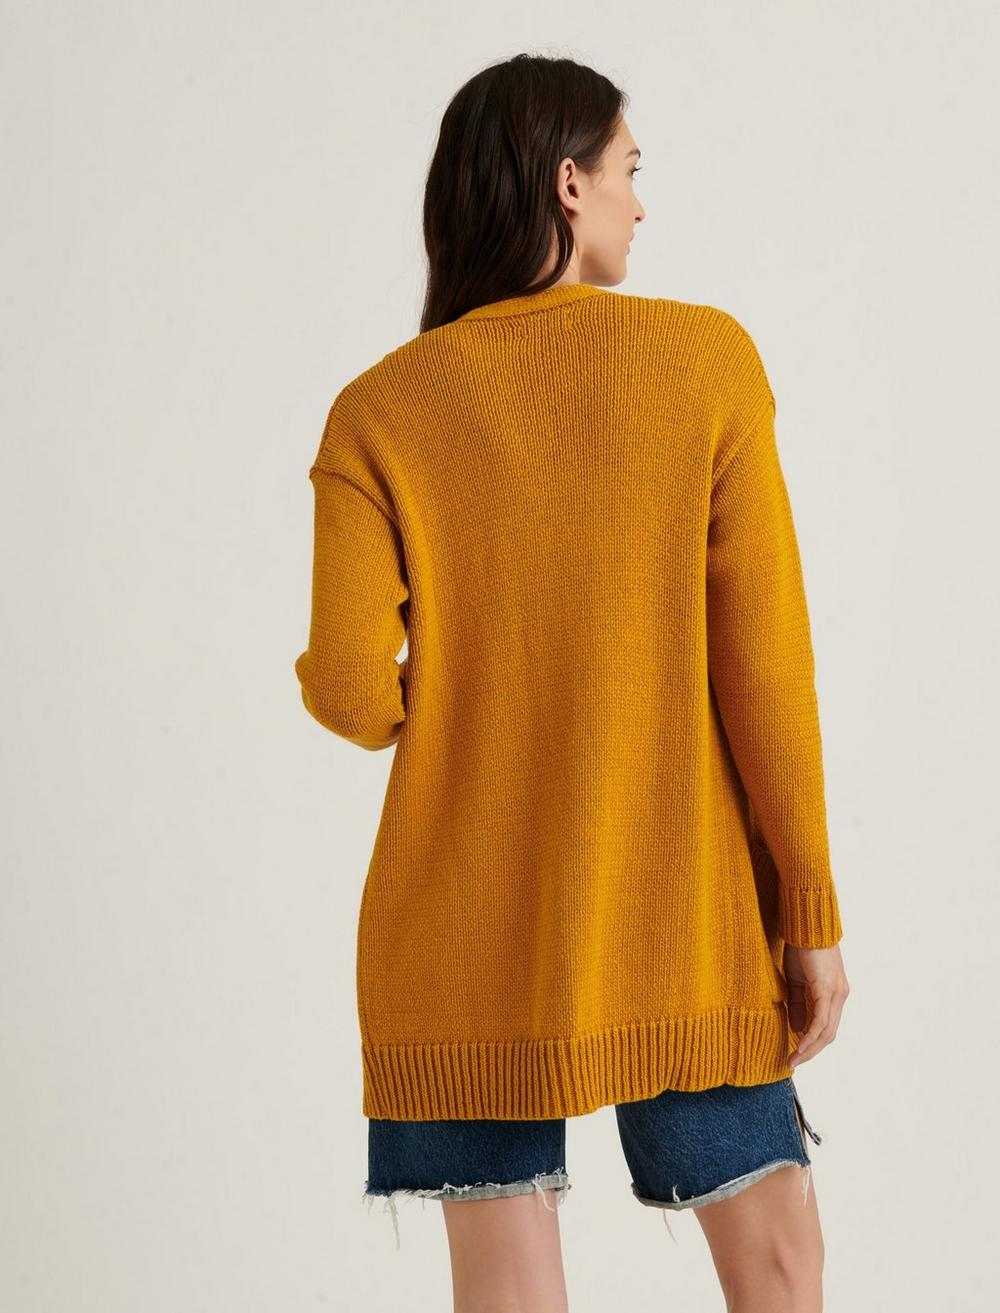 CABLE FRONT CARDIGAN, image 4